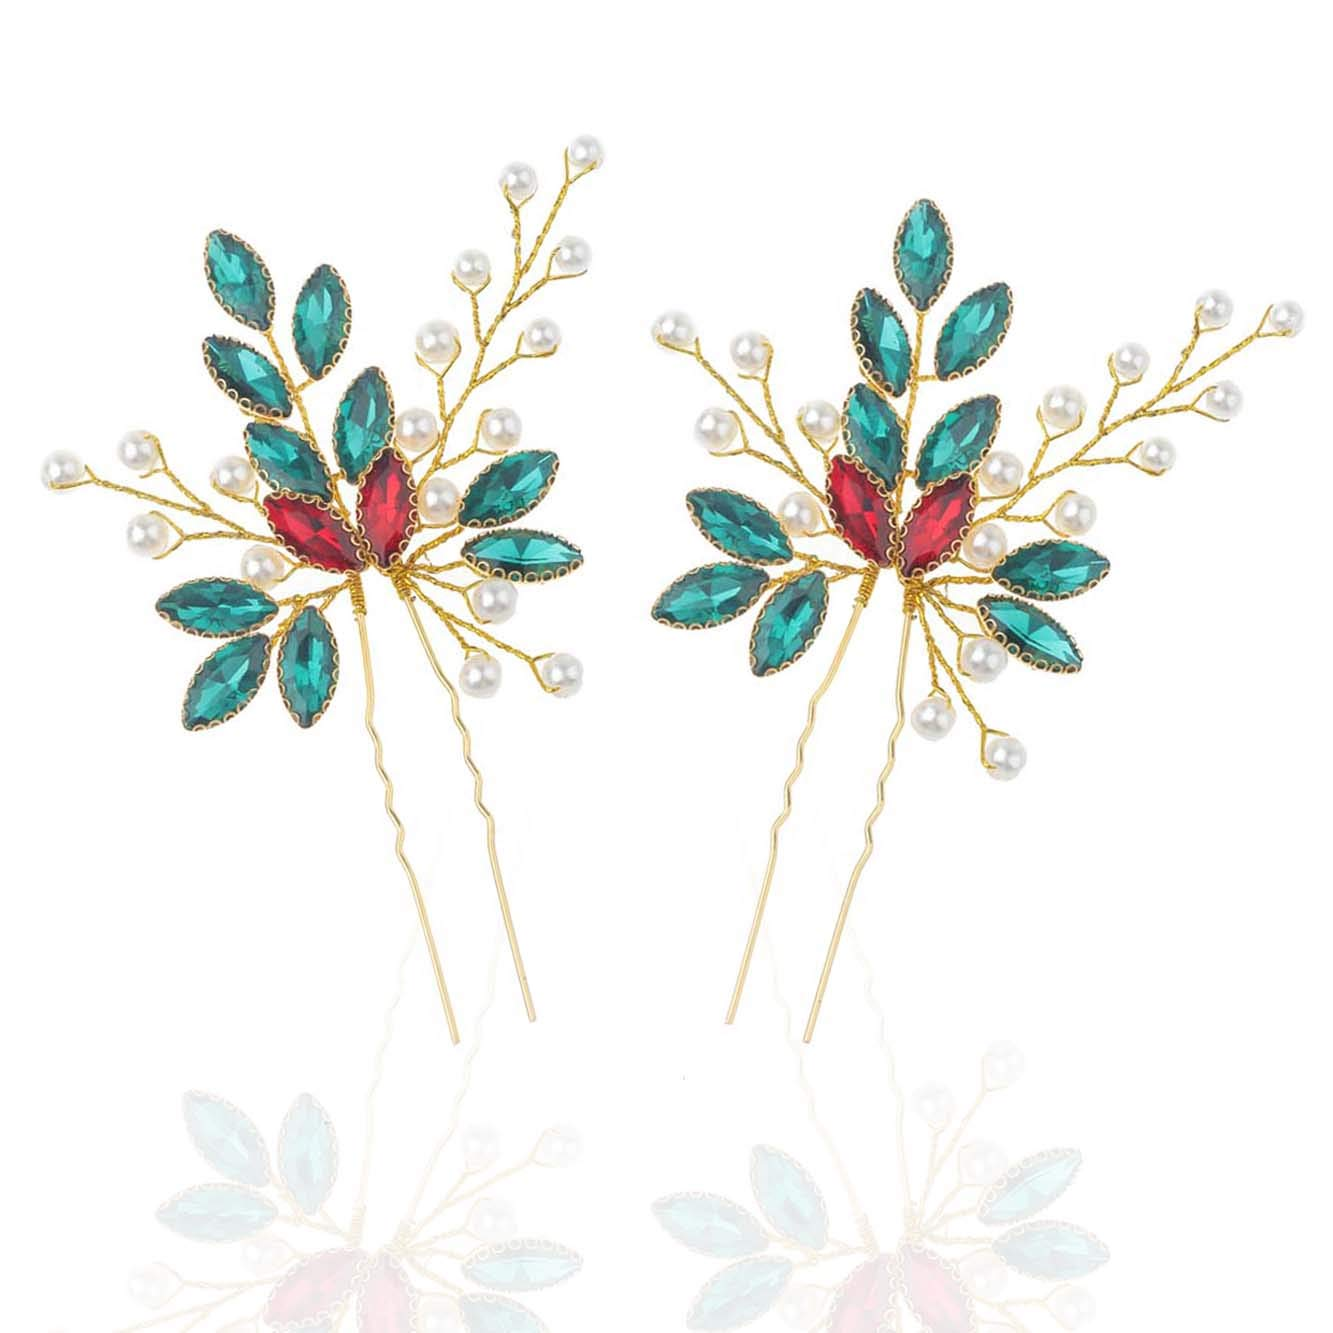 Unicra Baroque Wedding Green Crystal Hair Pins Wedding Bridal Hair Accessories for Brides Pack of 2